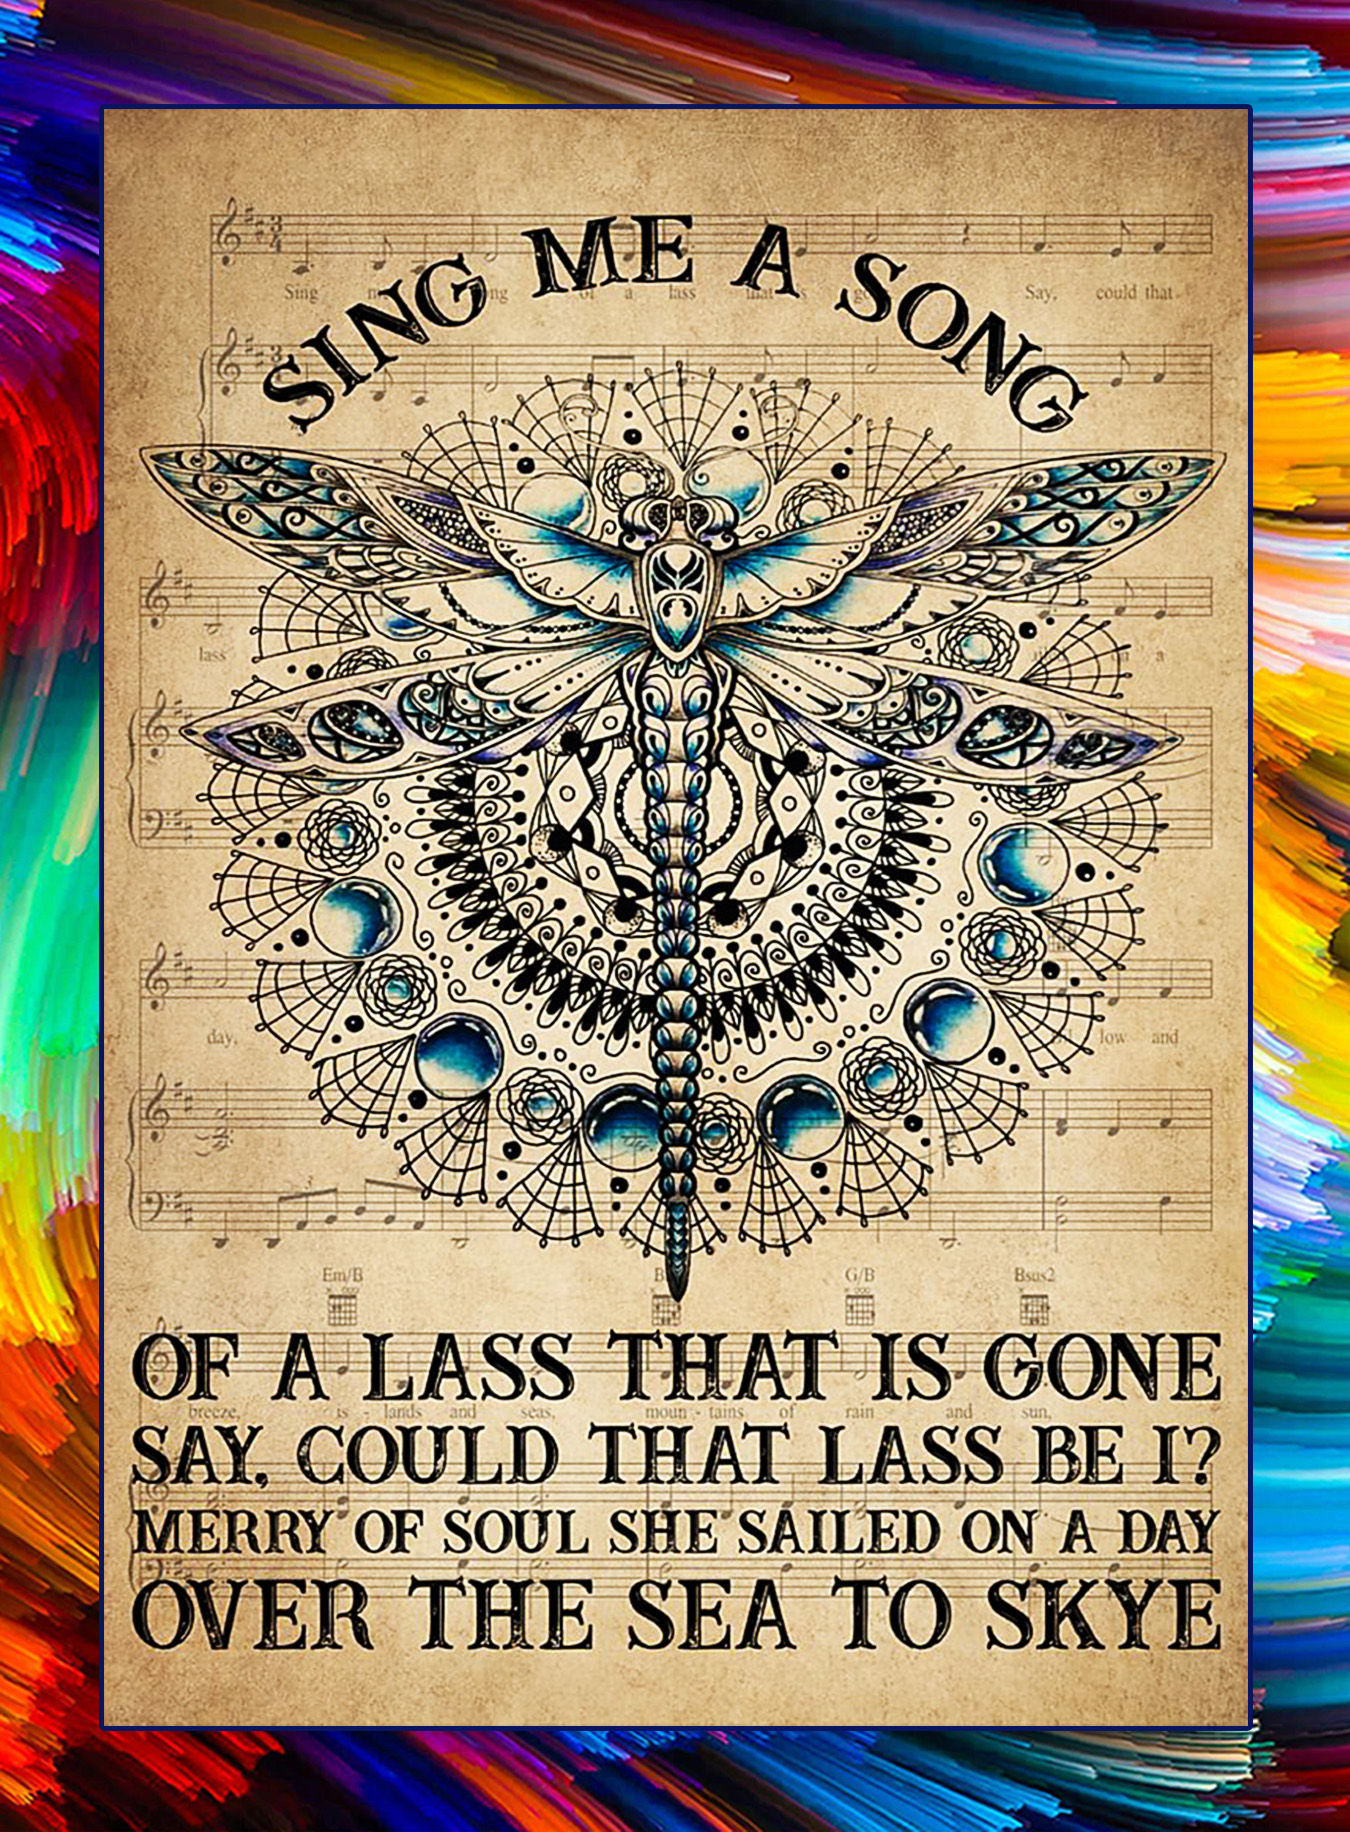 Dragonfly sing me a song poster - A3